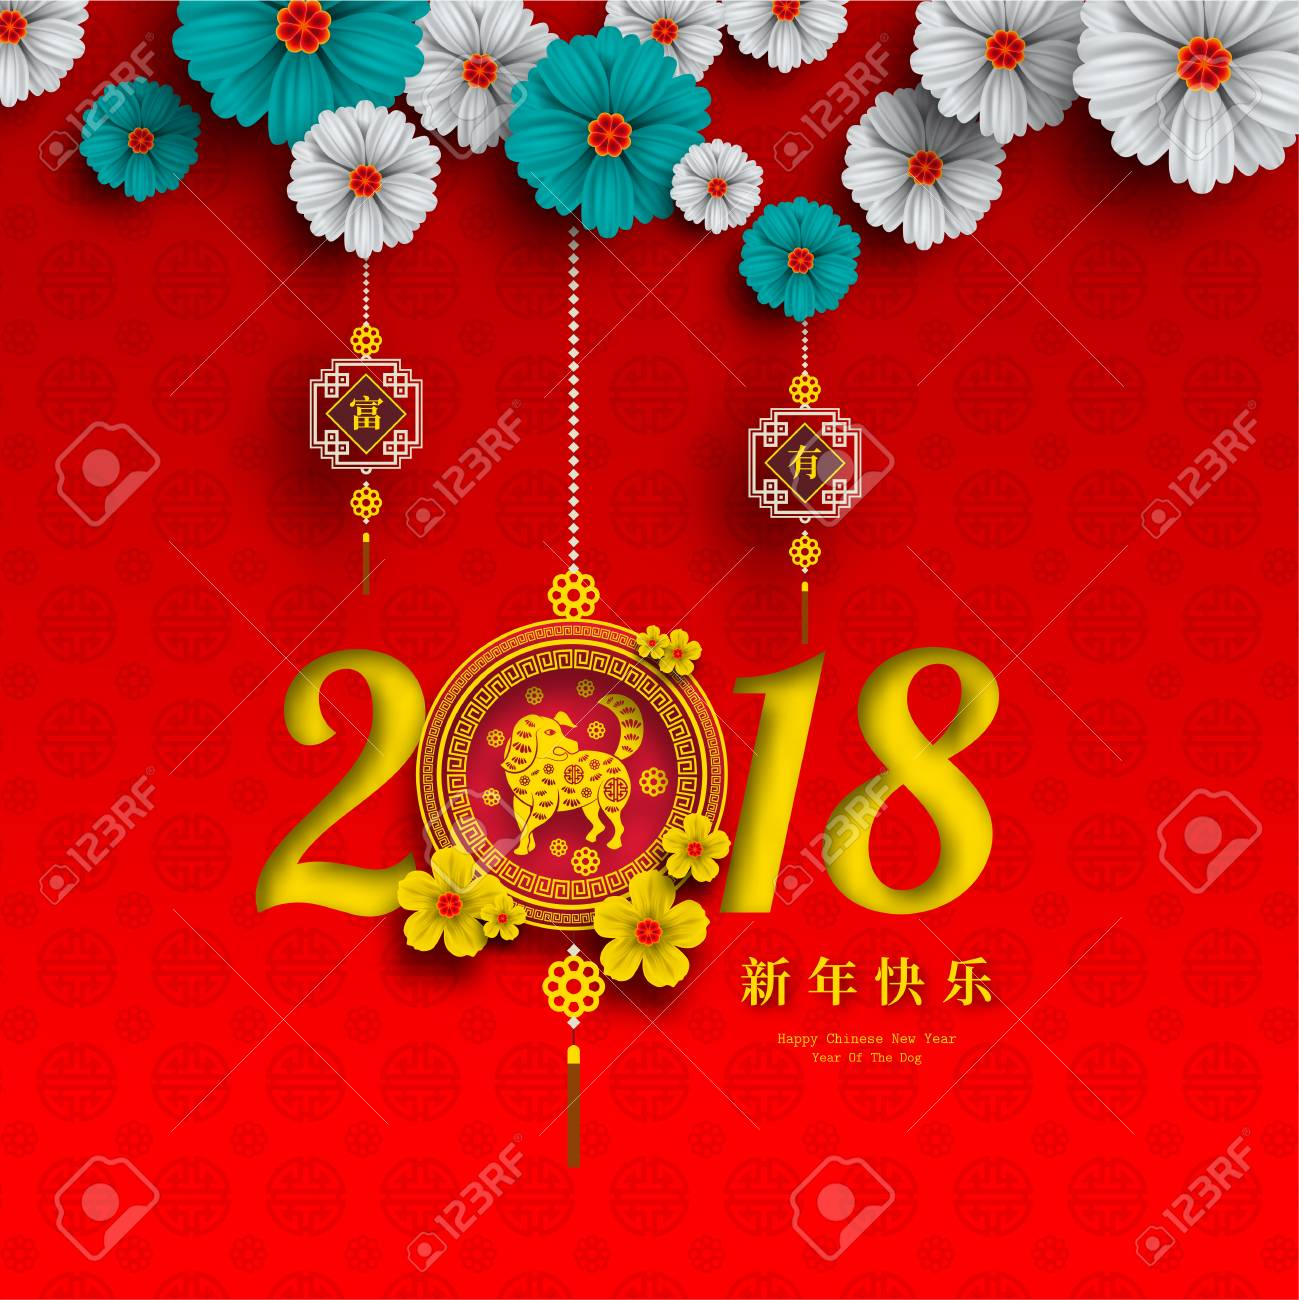 2018 chinese new year greeting card design royalty free cliparts 2018 chinese new year greeting card design stock vector 88901048 m4hsunfo